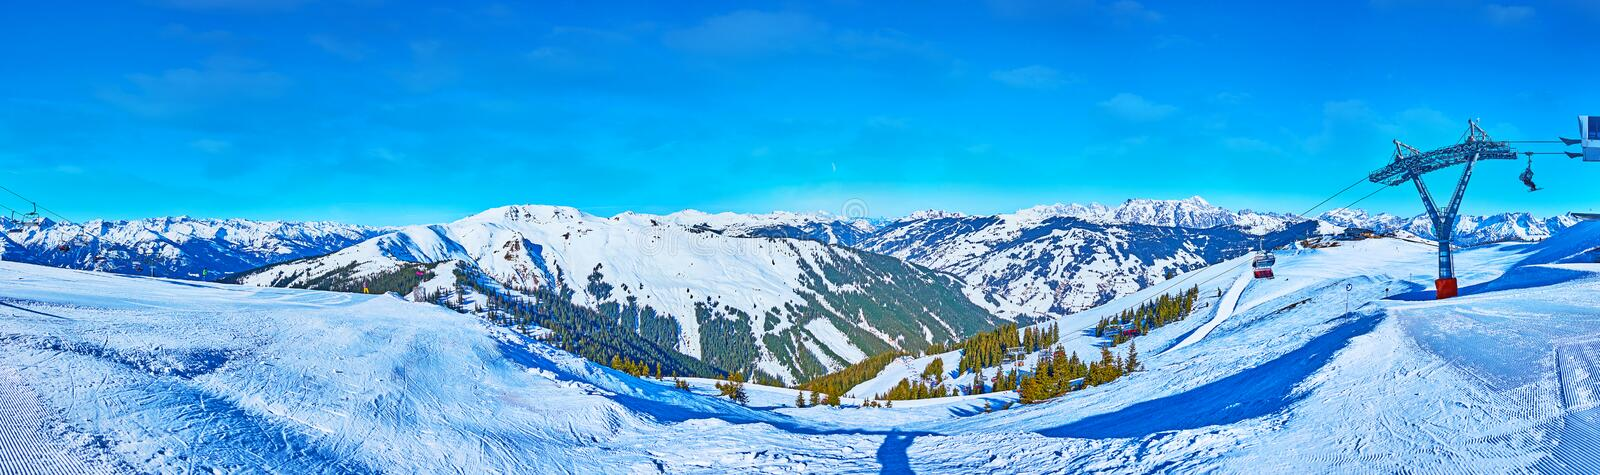 Winter Alpine landscapes of Schmitten mount, Zell am See, Austria stock photography